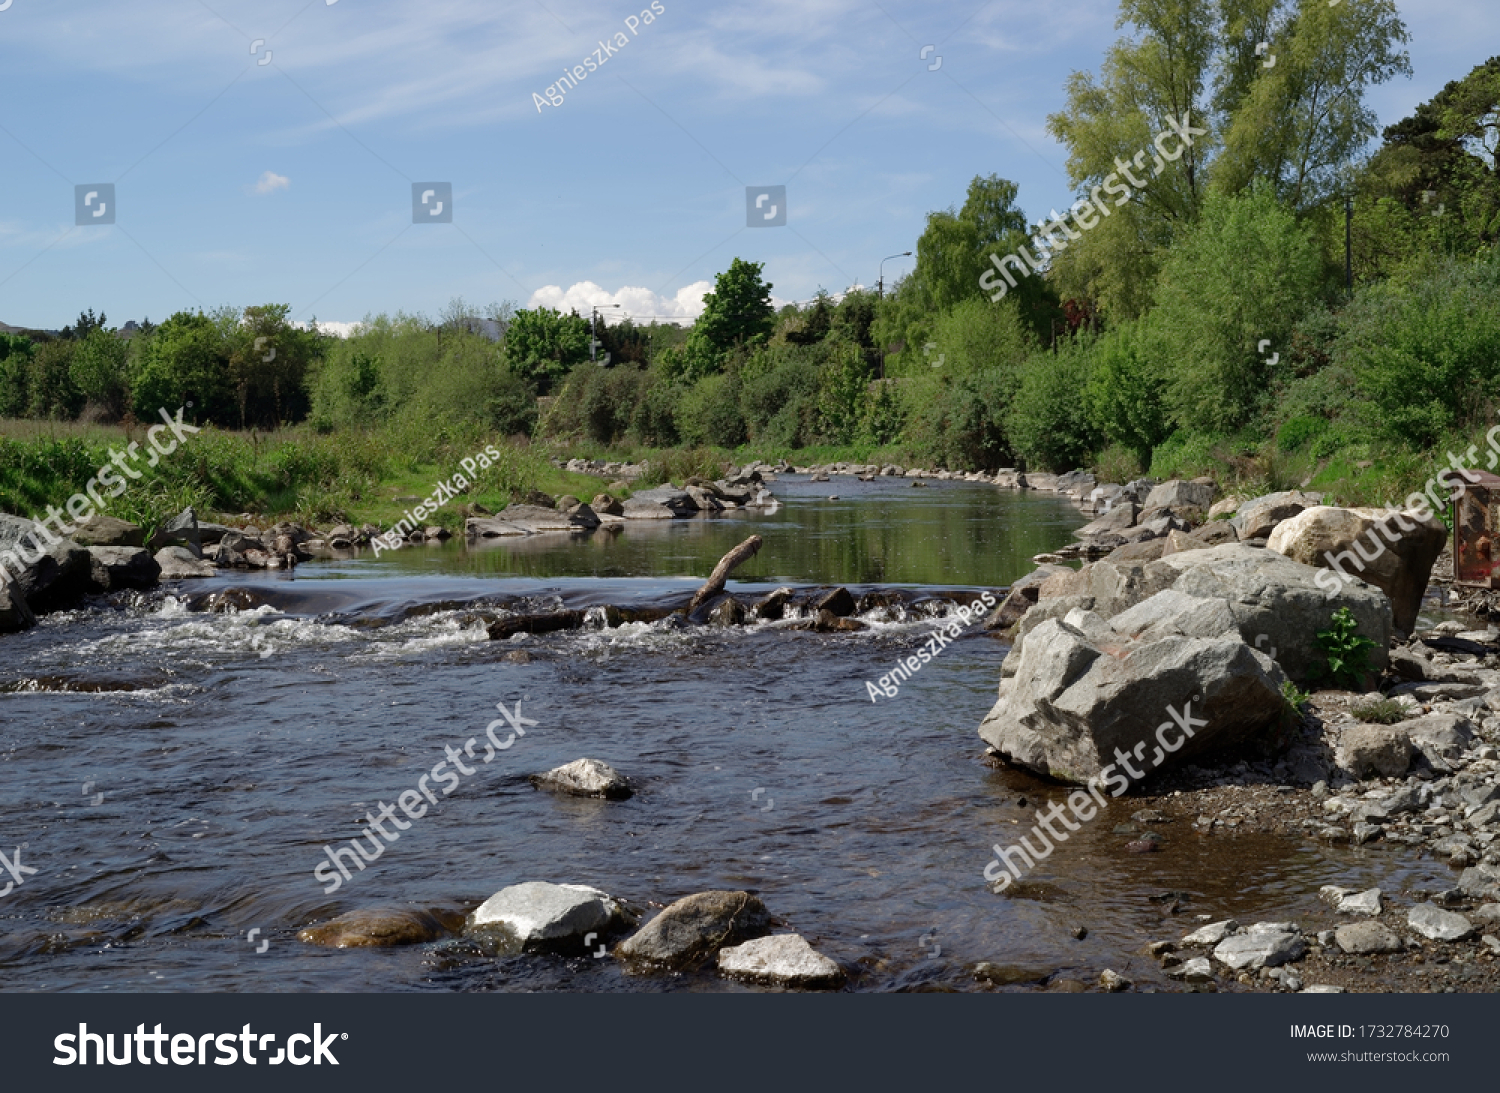 stock-photo-view-of-the-dargle-river-in-